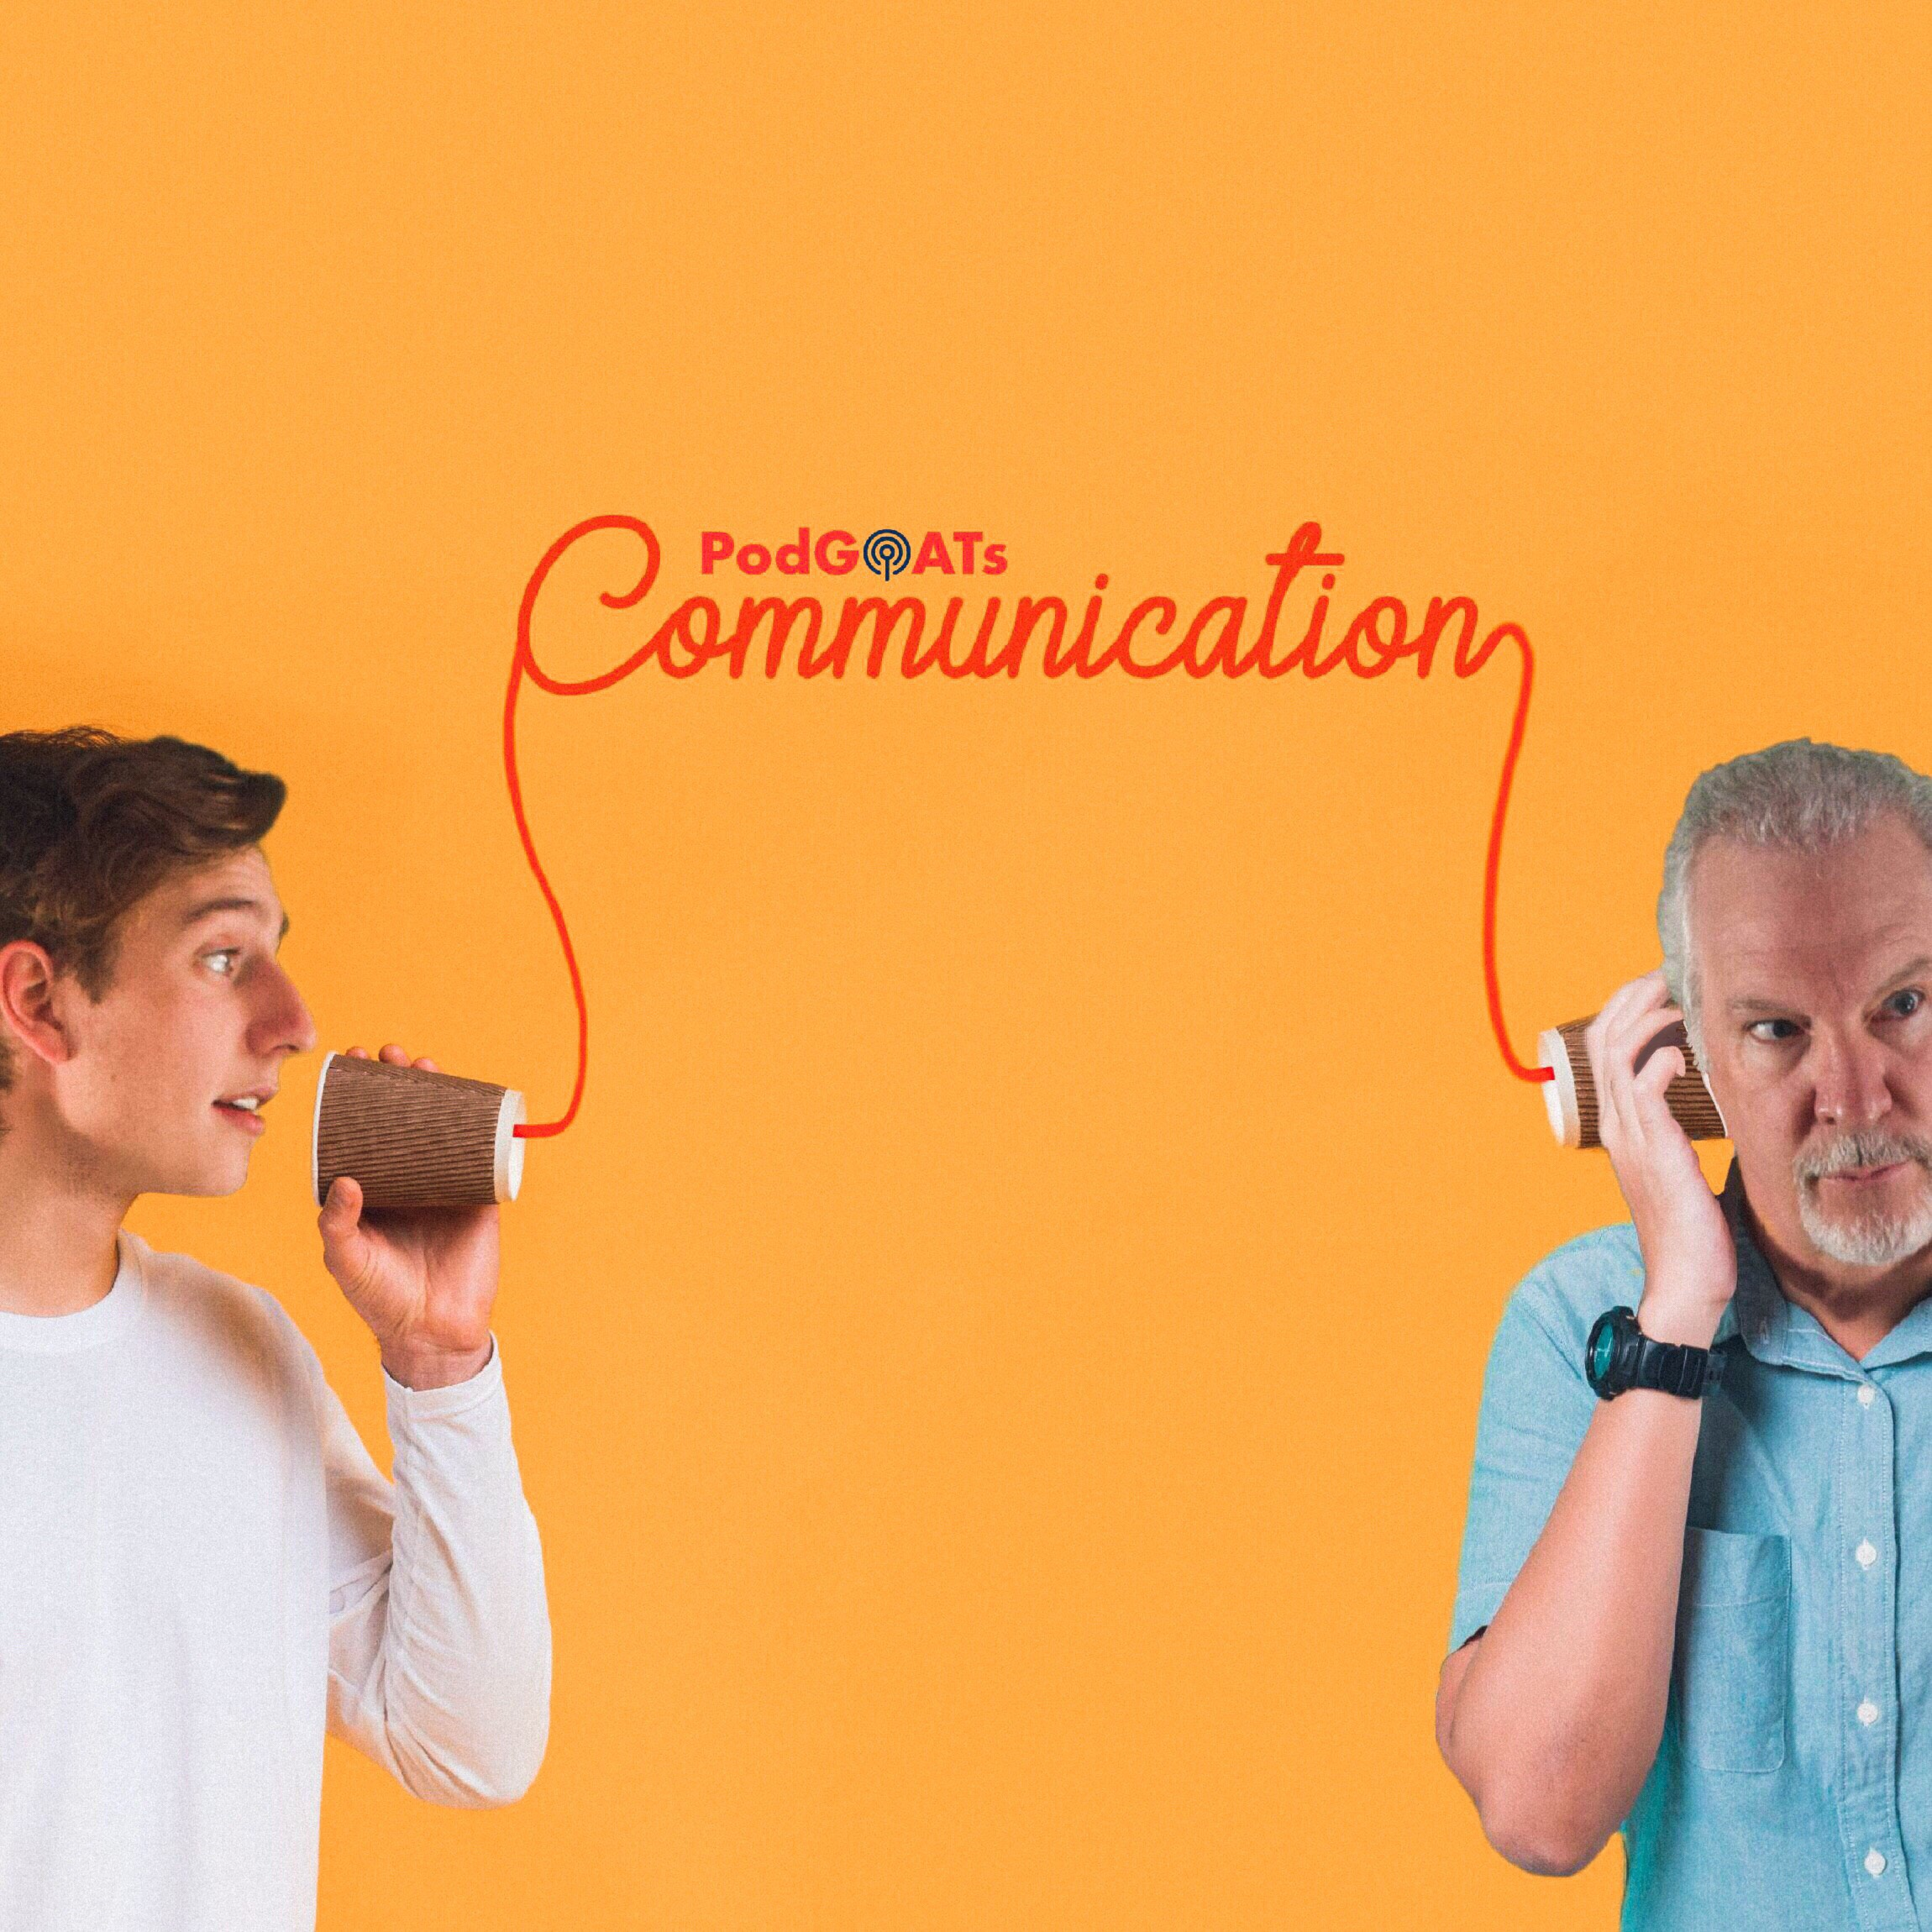 Communication: How We Came to Message One Another